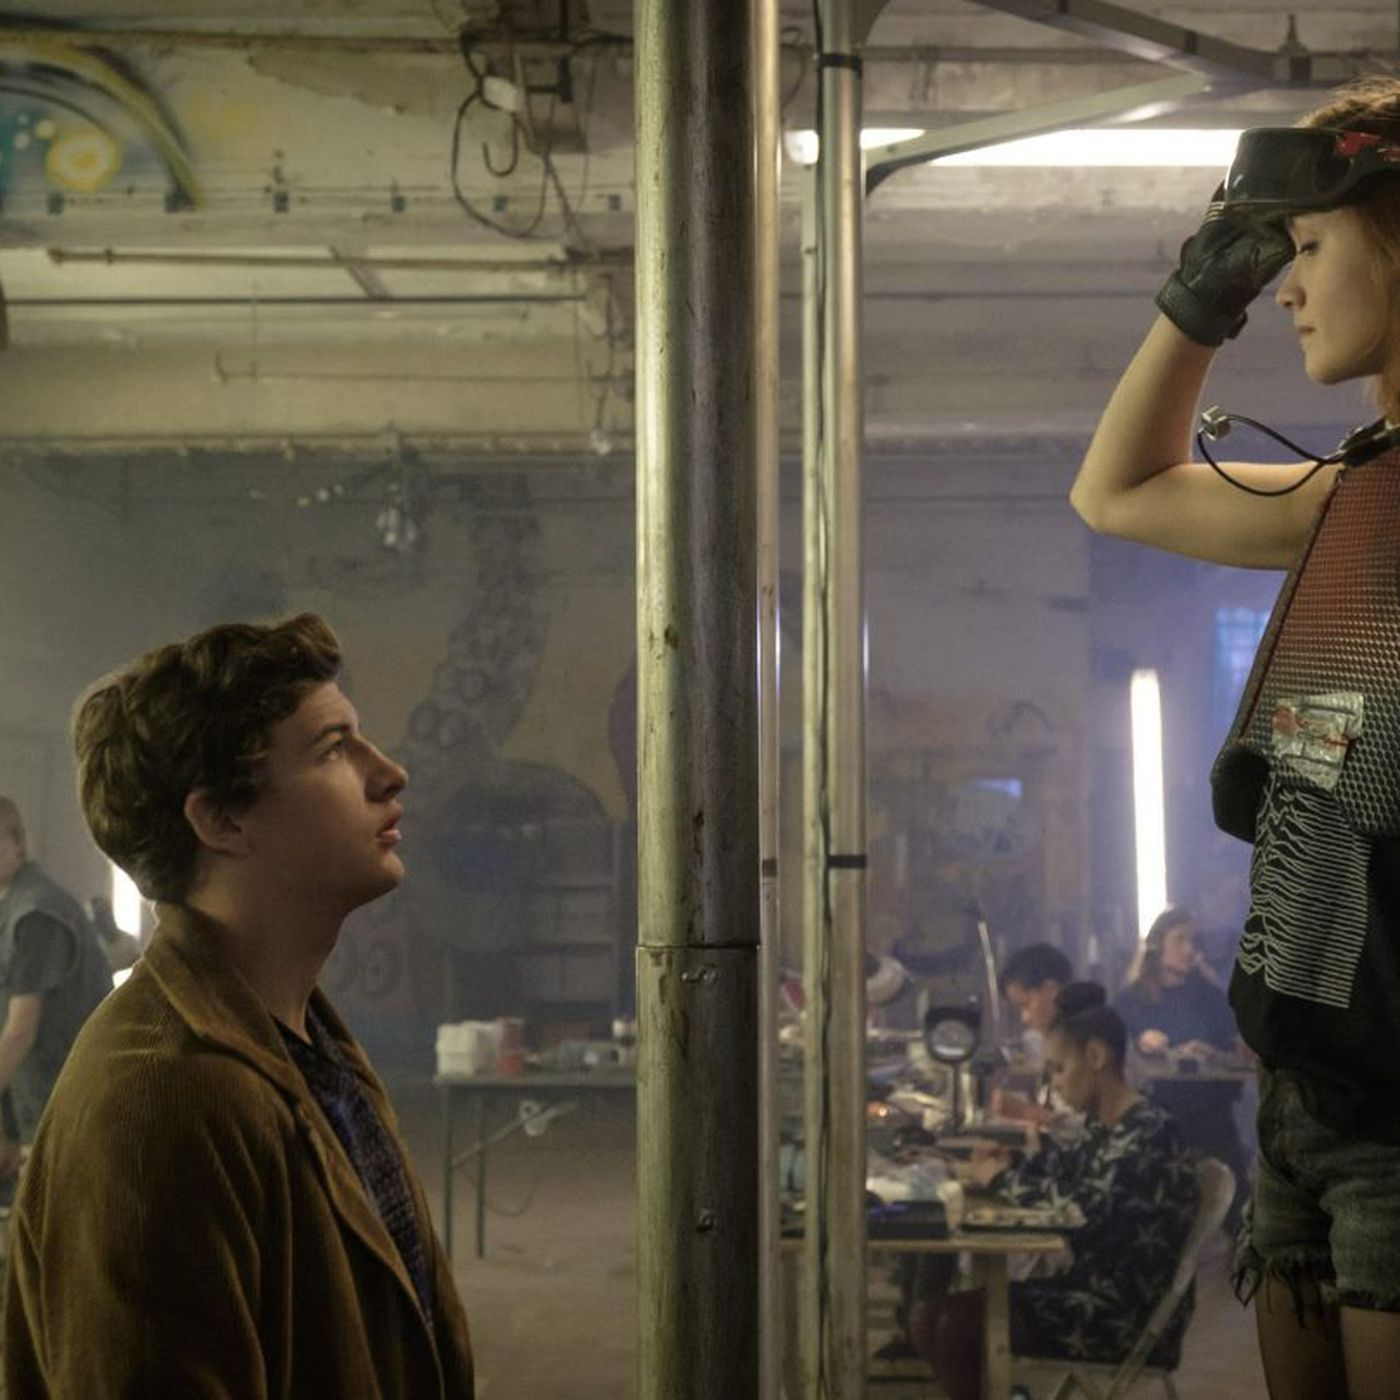 steven spielberg s ready player one improves immensely on the book the verge steven spielberg s ready player one